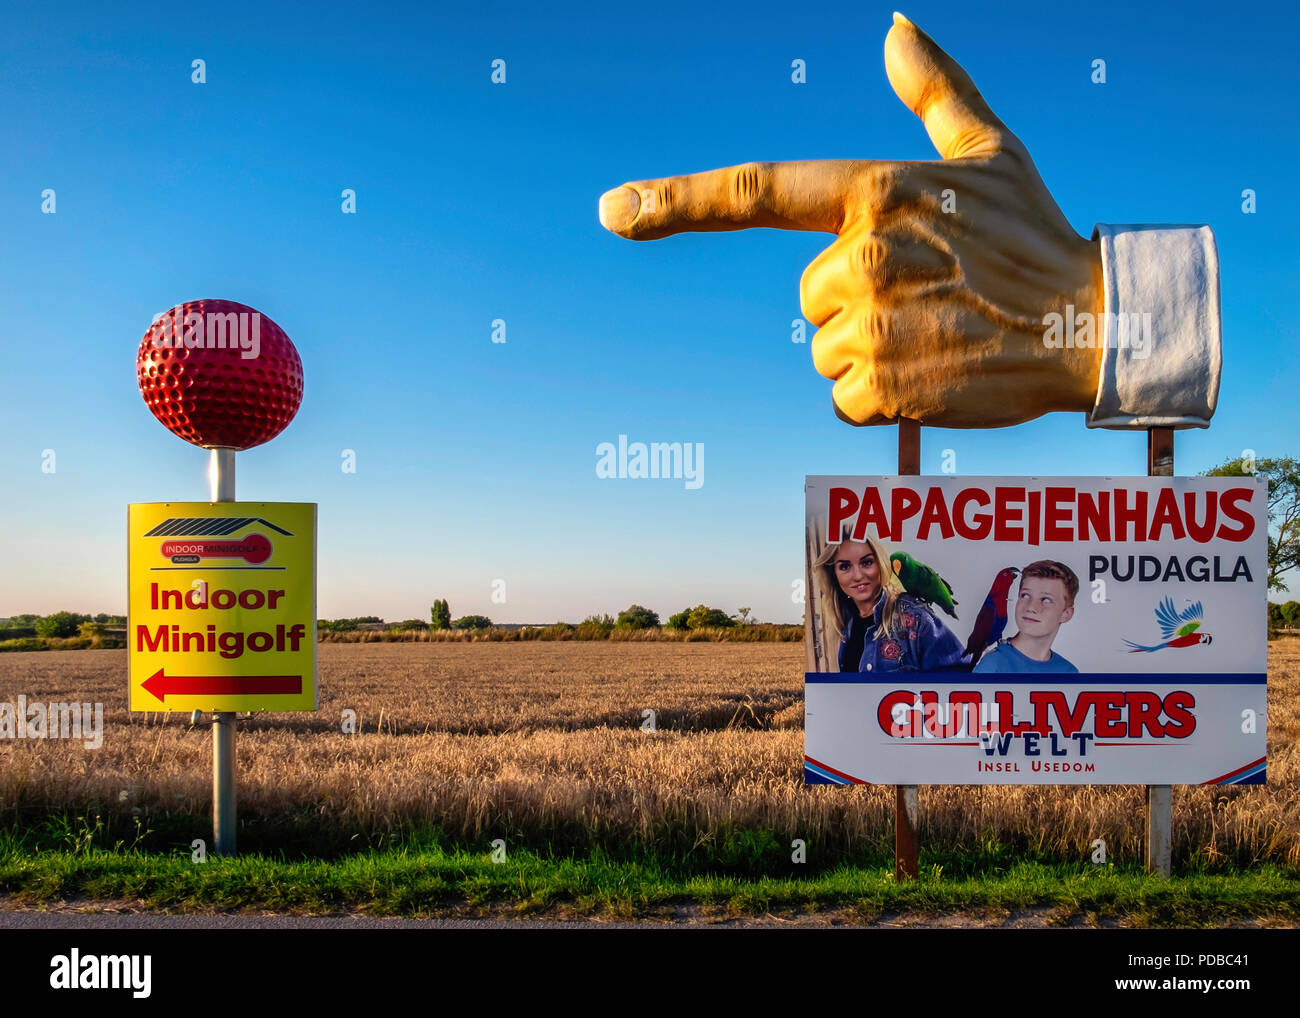 Signs advertise amusement parks  & family fun at Pudagla Business park,Mecklenburg-Vorpommern,Germany Stock Photo